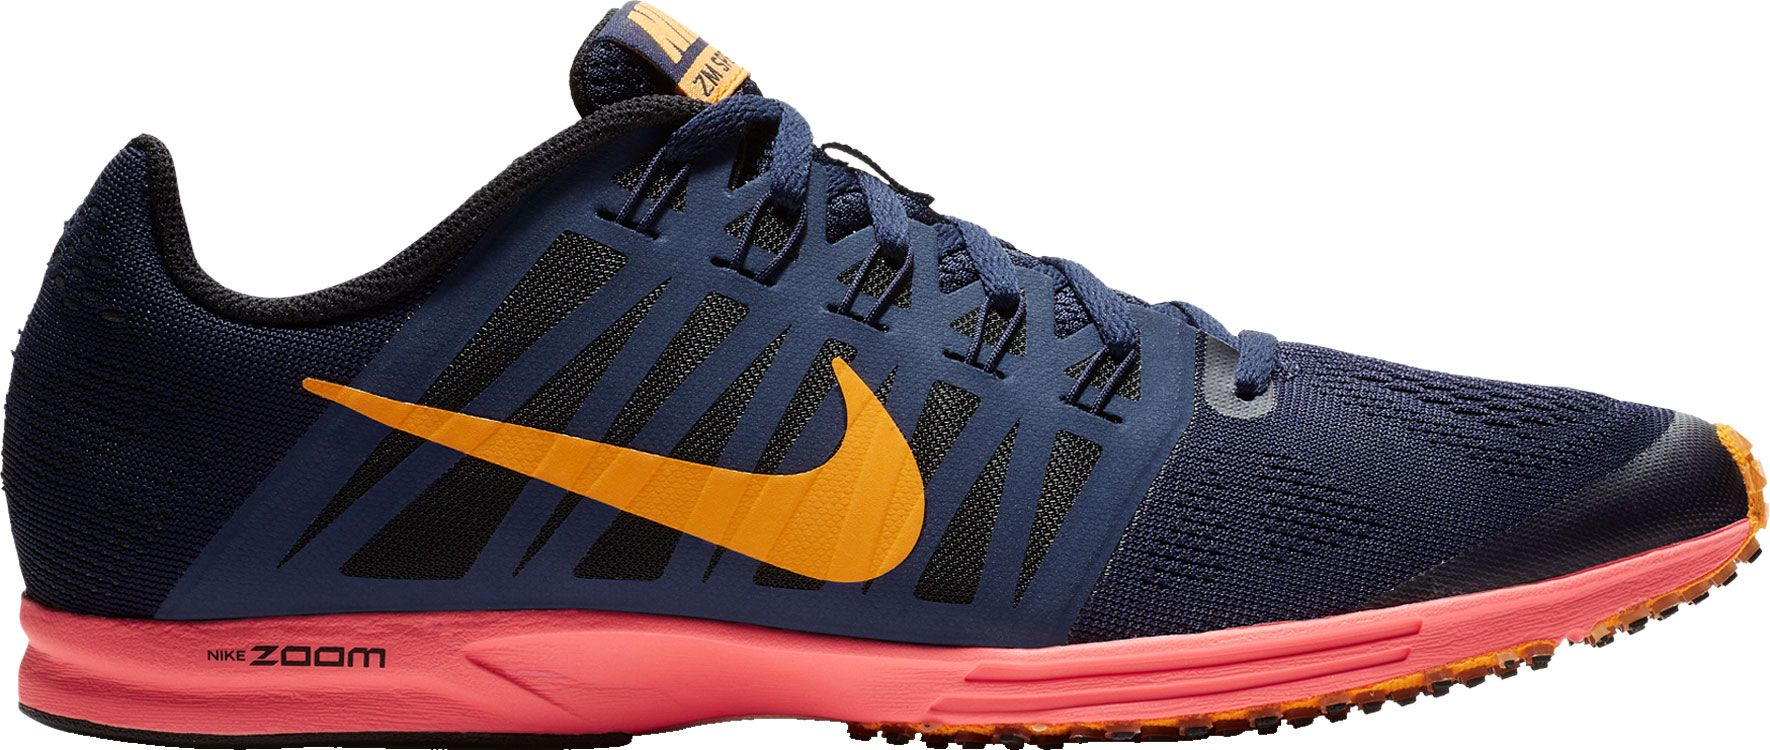 Nike Zoom Speed Racer 6 Track and Field